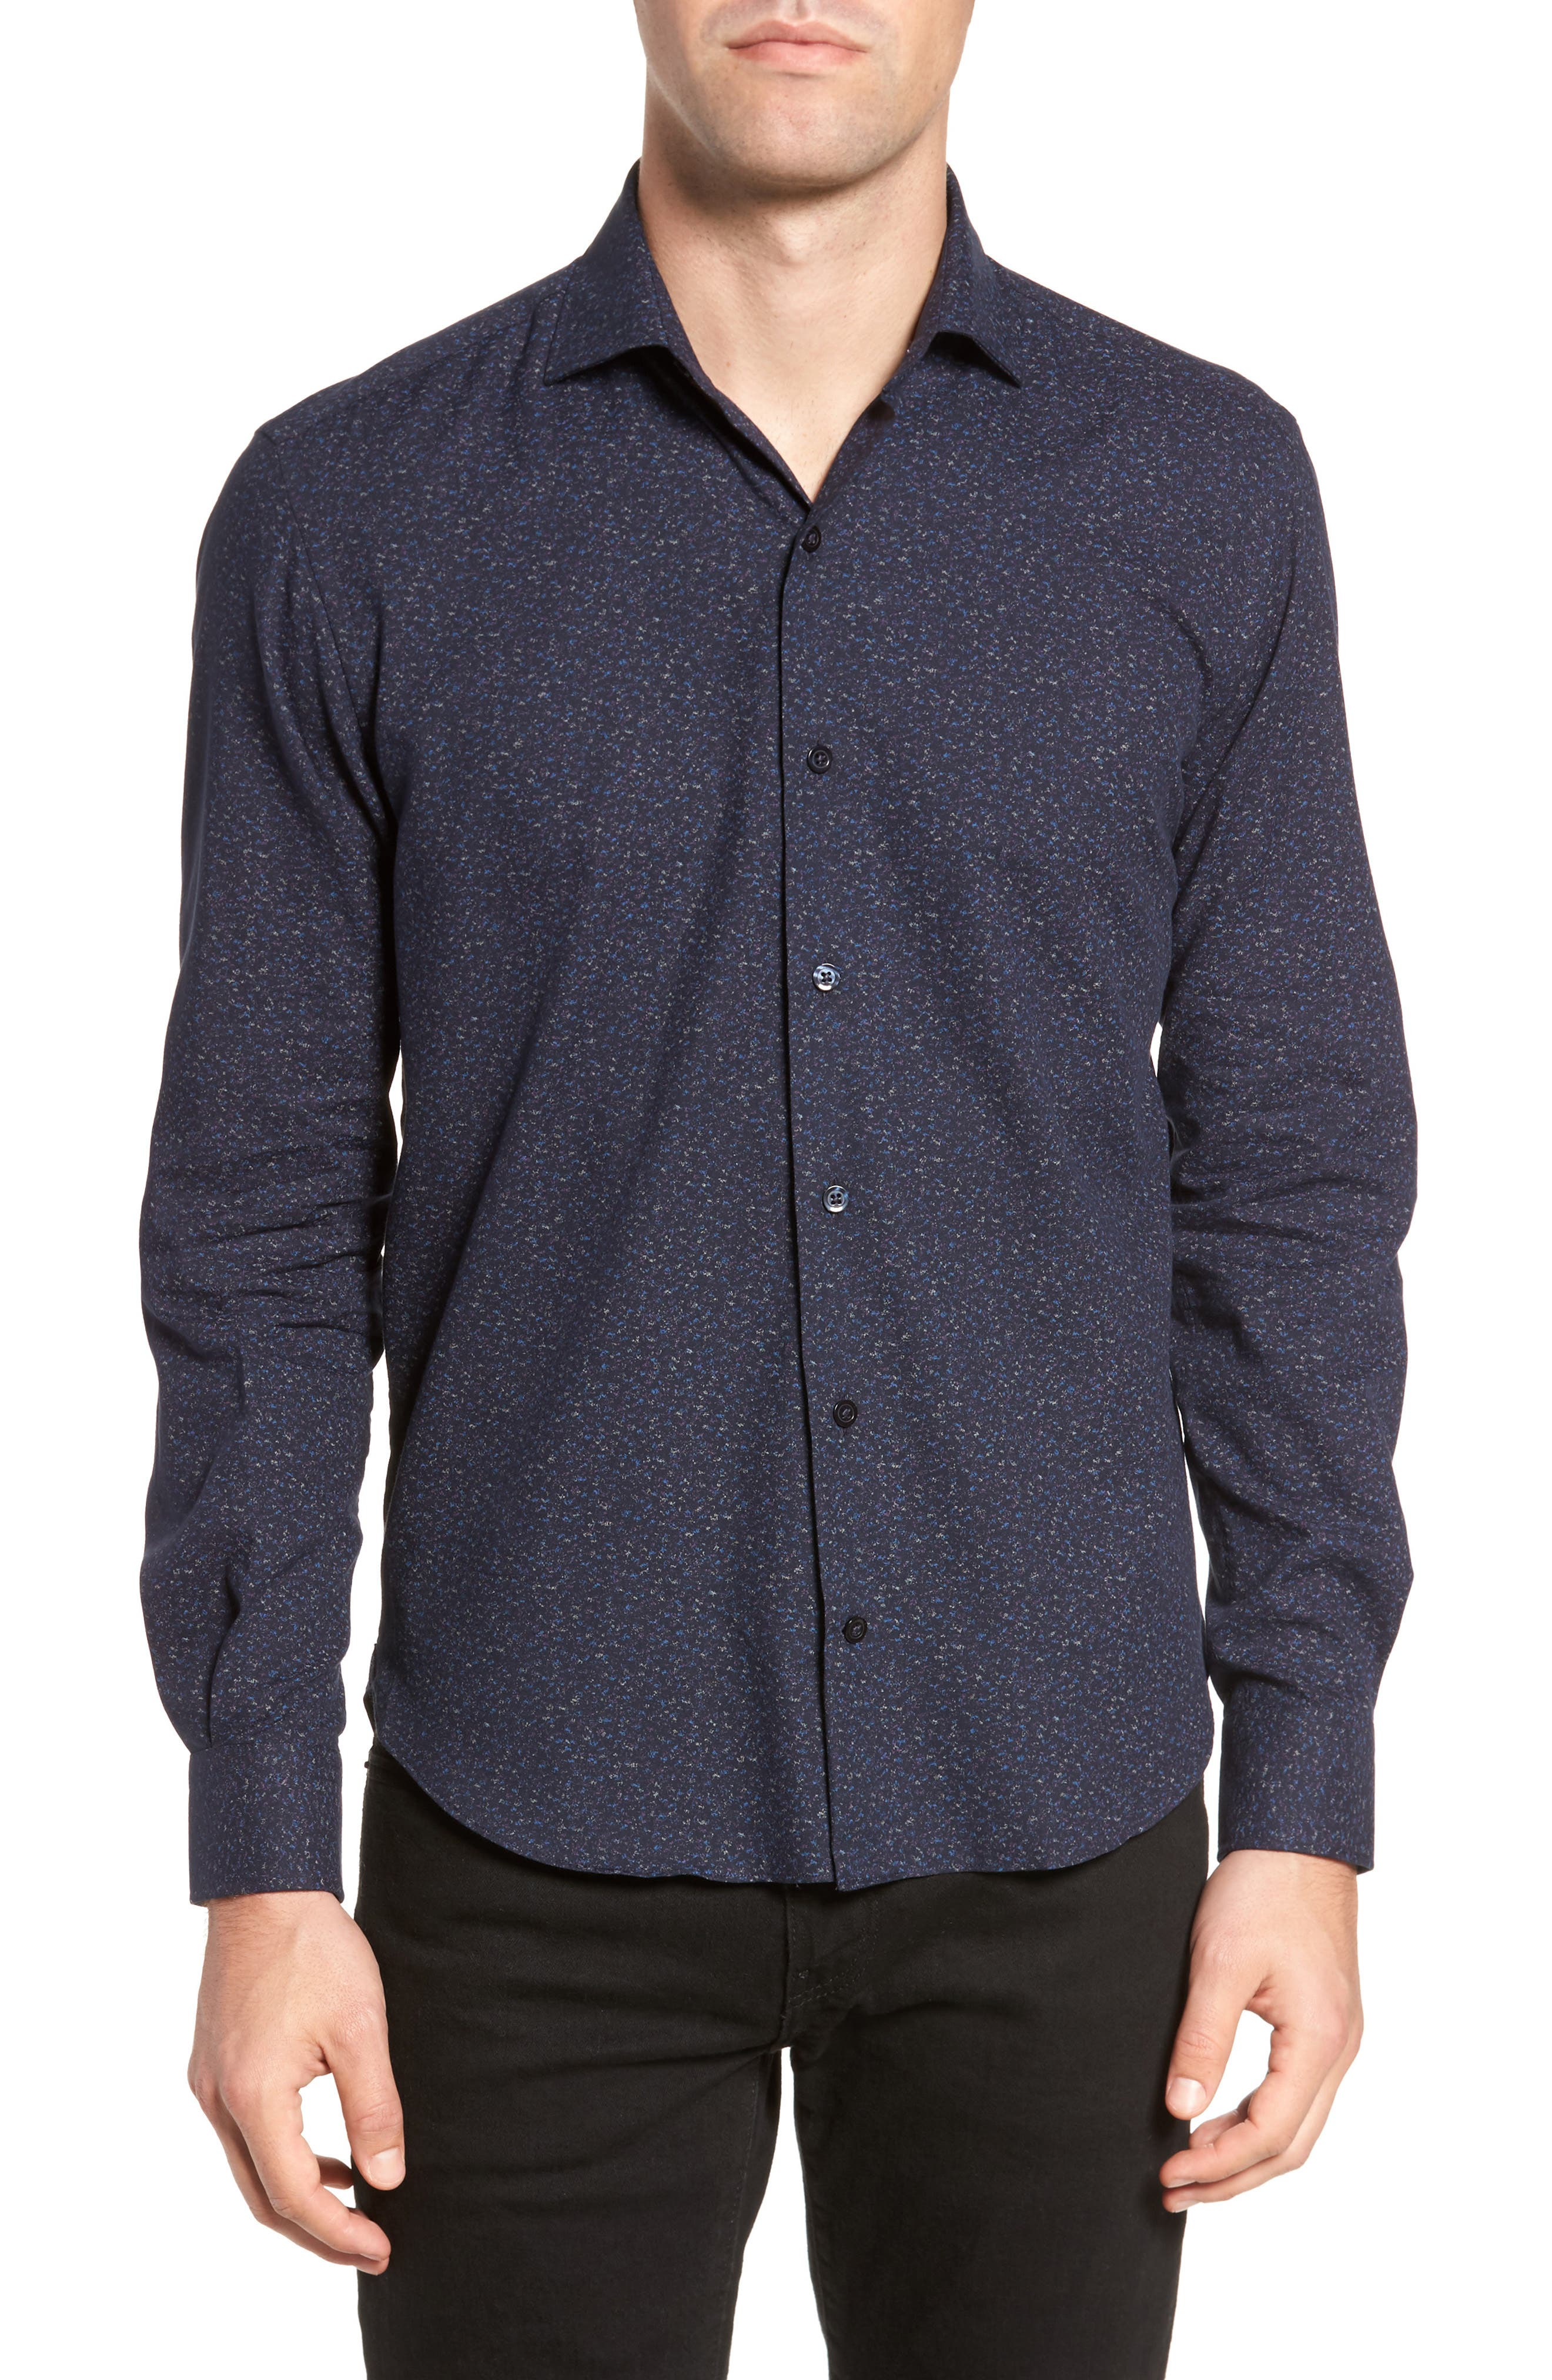 Speckled Sport Shirt,                             Main thumbnail 1, color,                             Navy